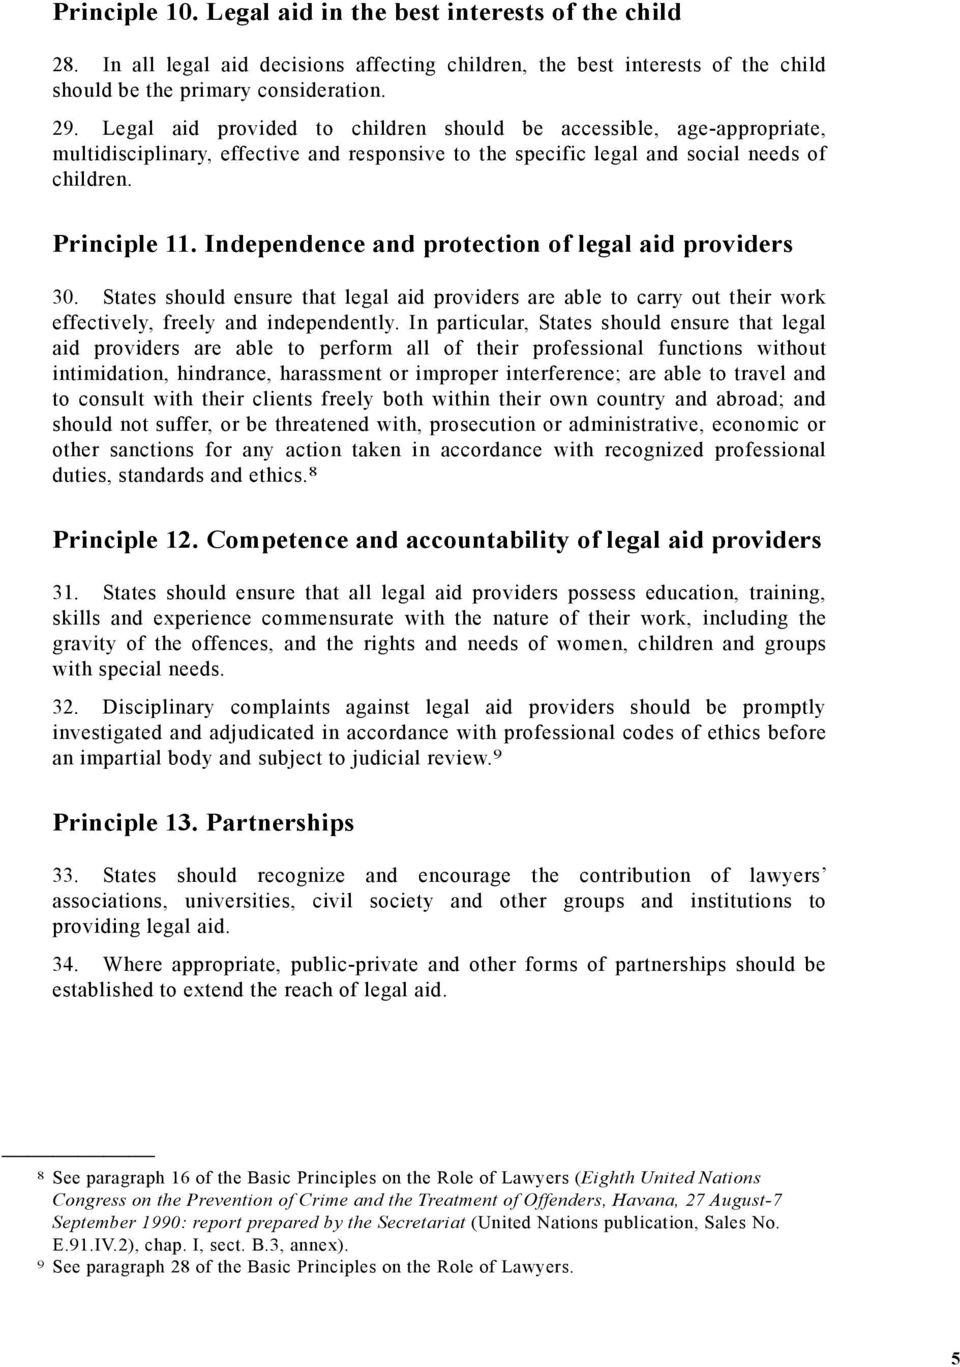 Independence and protection of legal aid providers 30. States should ensure that legal aid providers are able to carry out their work effectively, freely and independently.